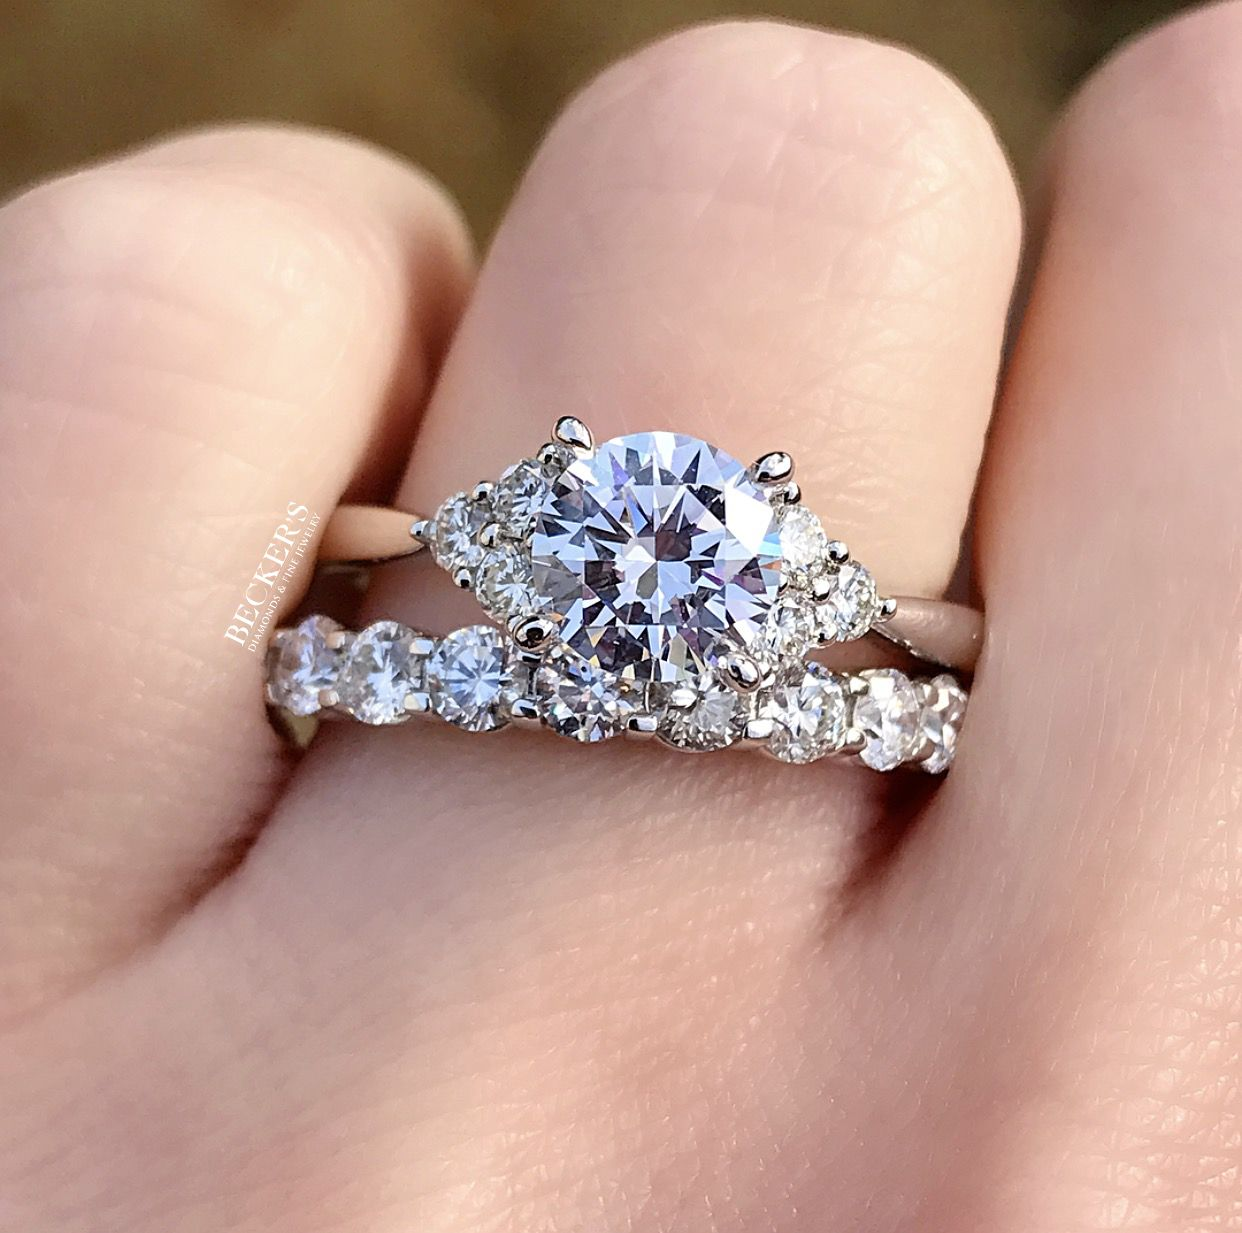 Loving This Engagement Ring By Artcarved Diamond Trio Clusters